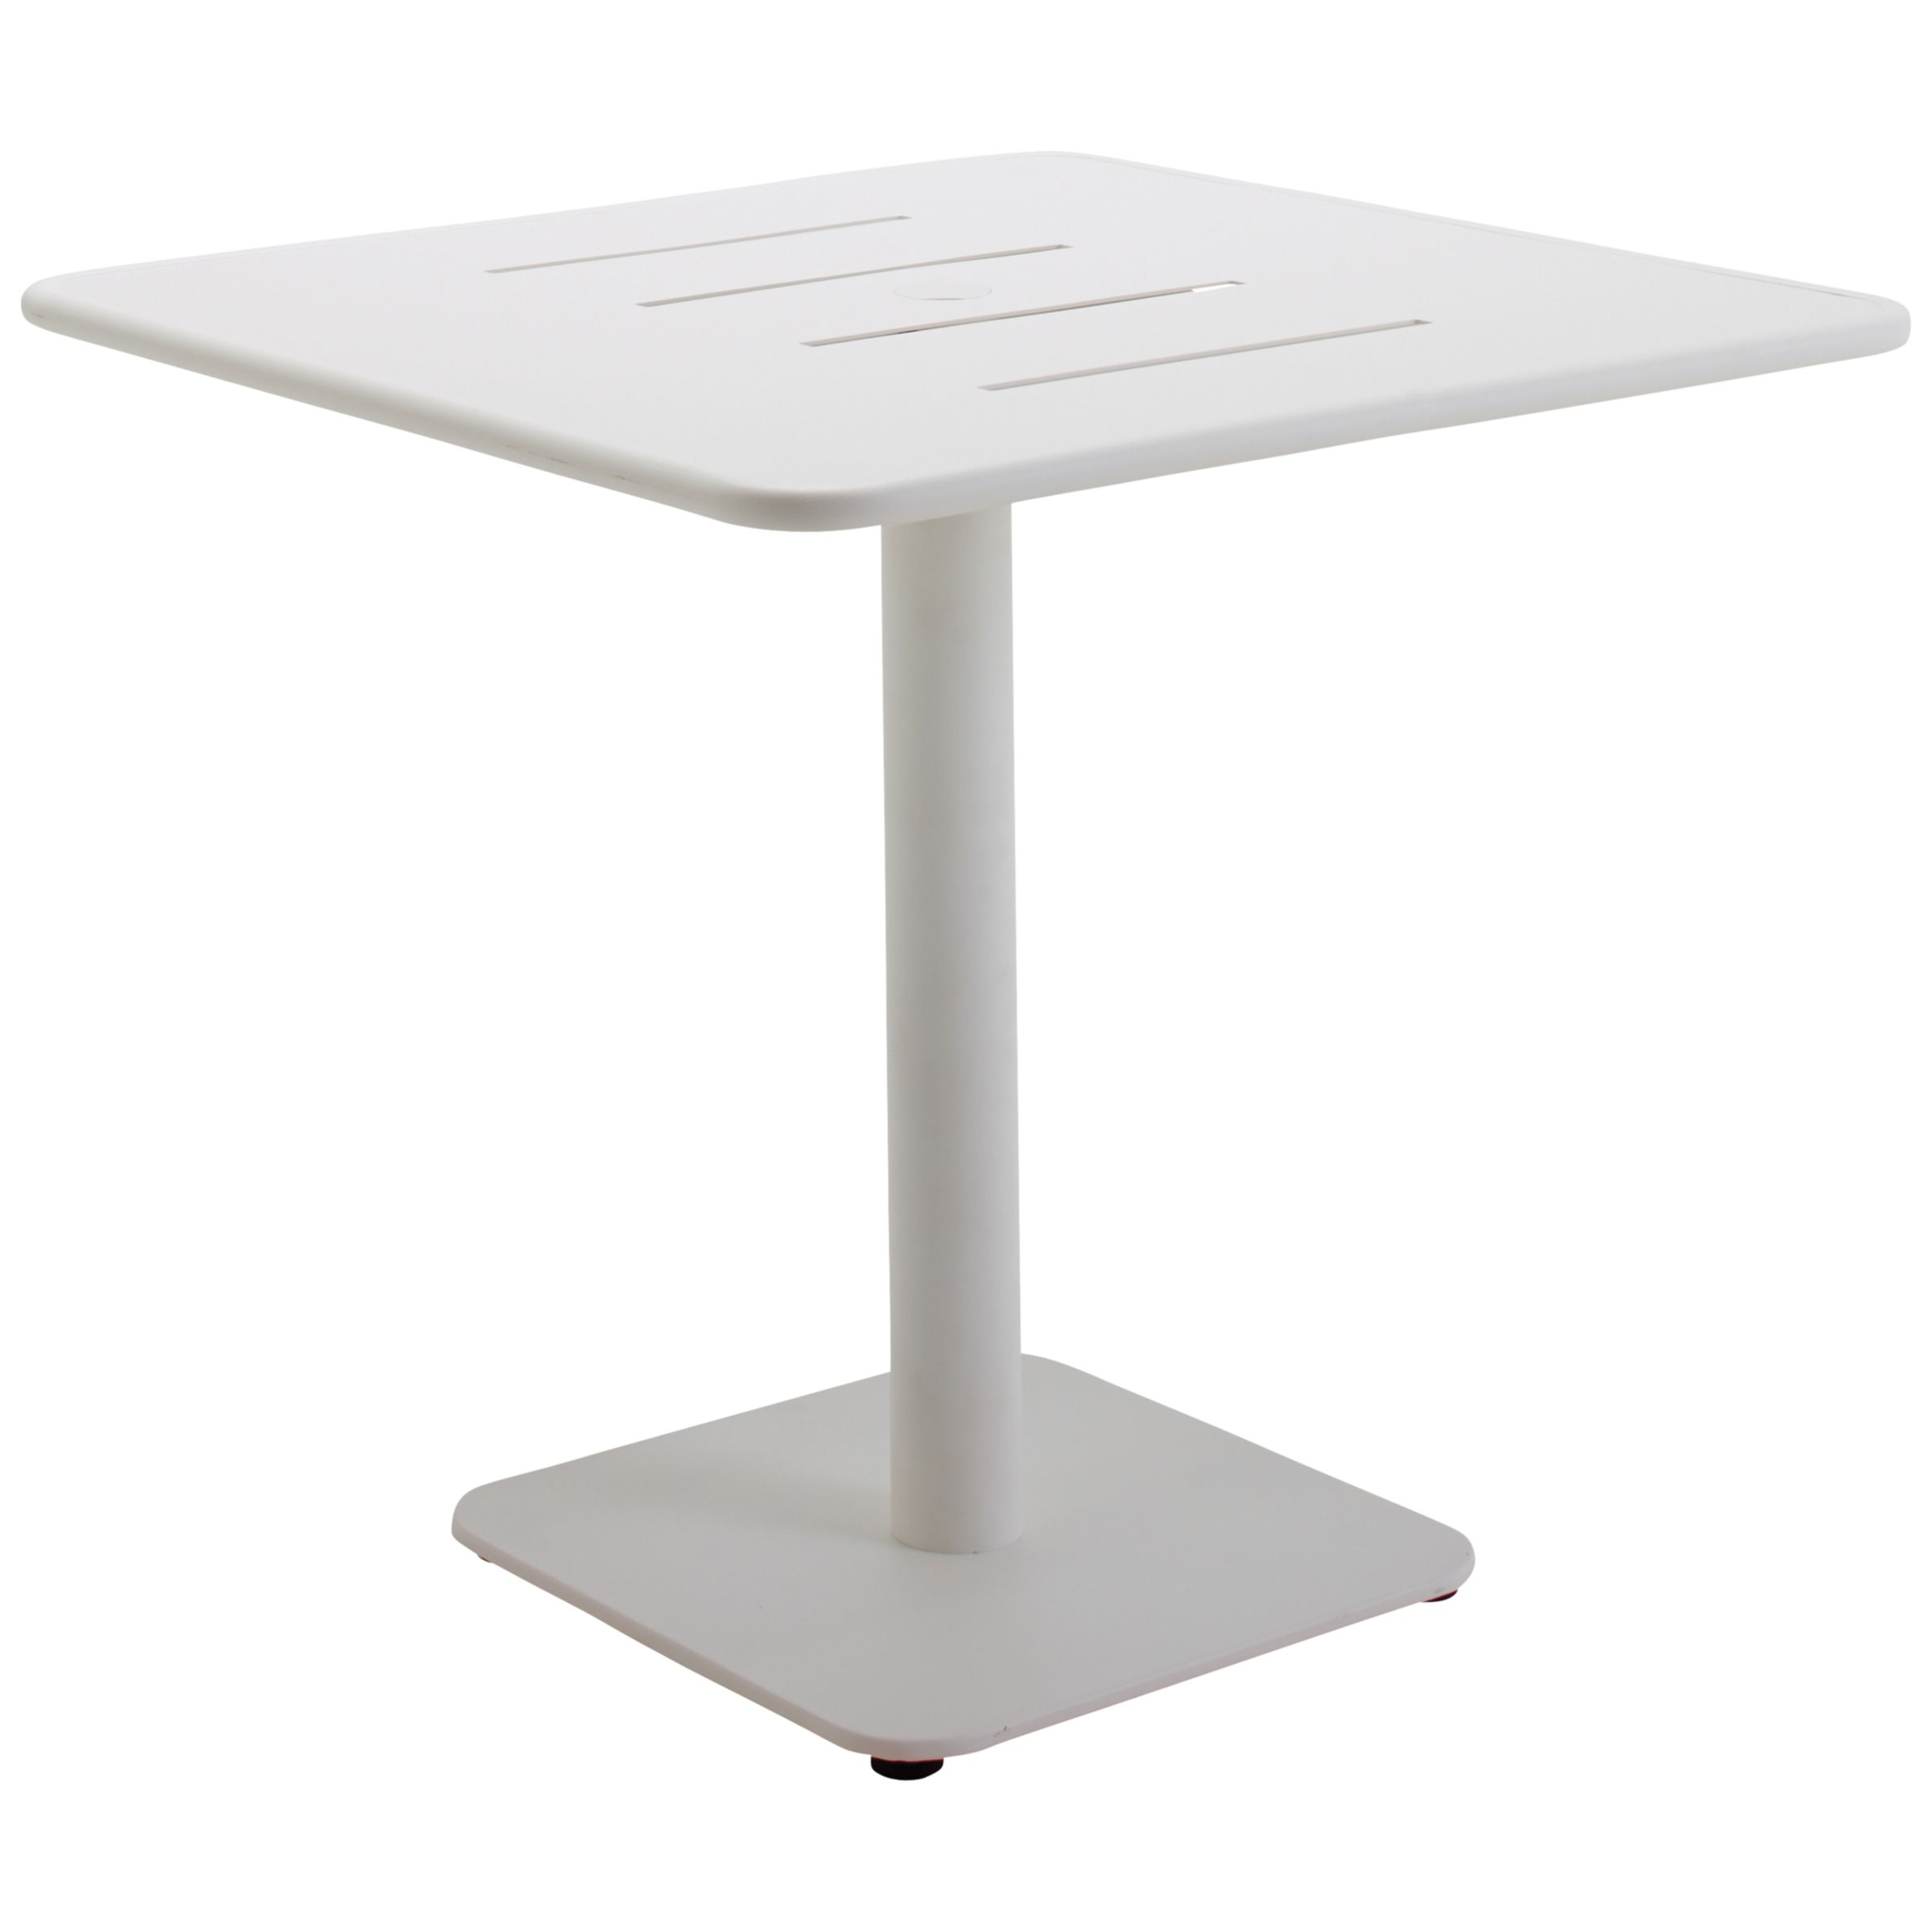 Gloster Nomad Square 90cm Pedestal Dining Table, White